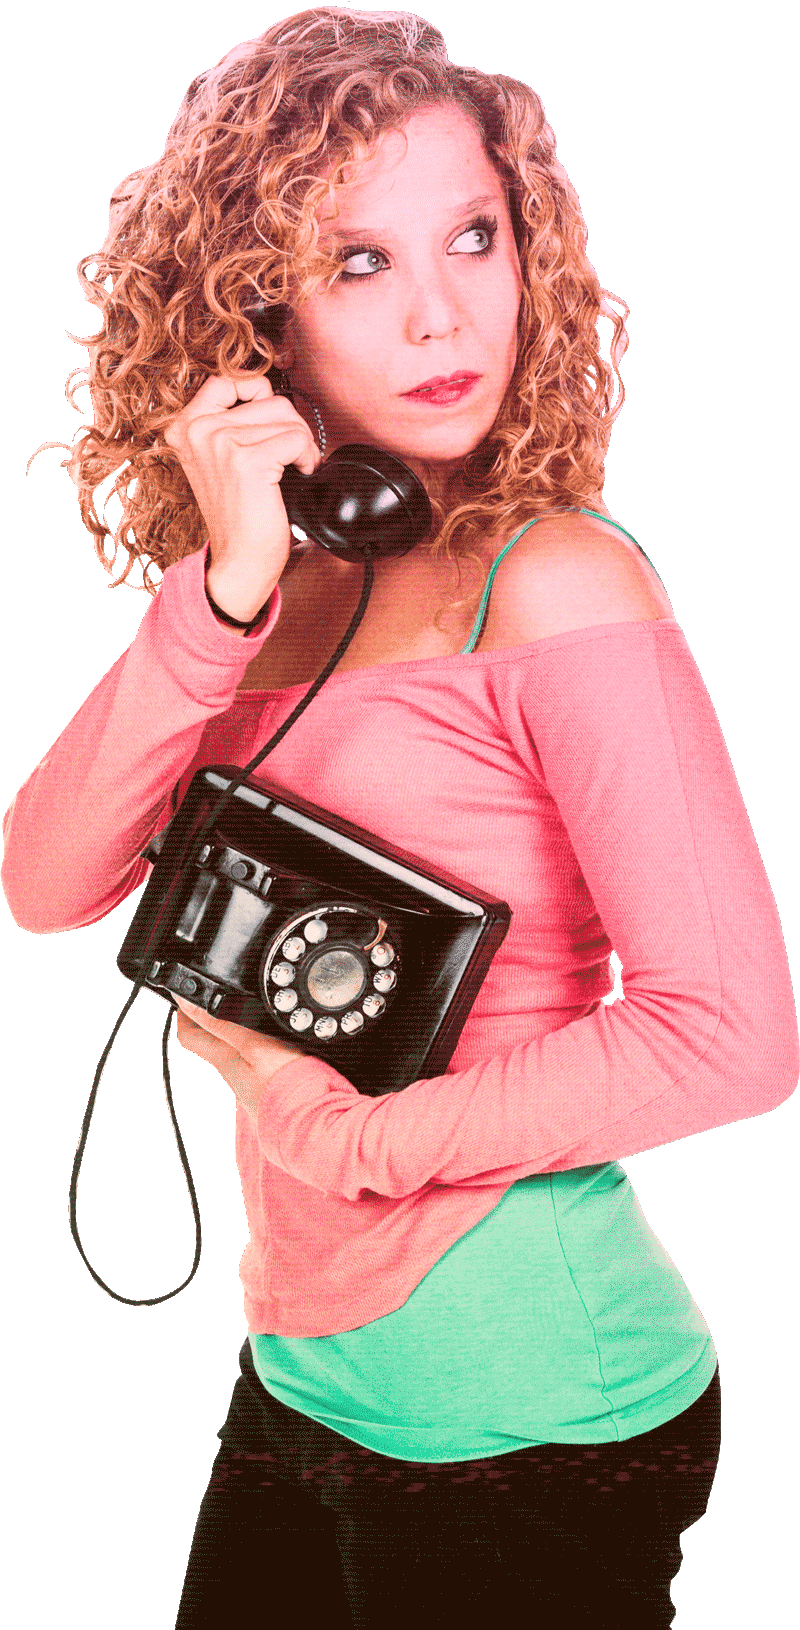 Alli for some reason on a rotary phone.